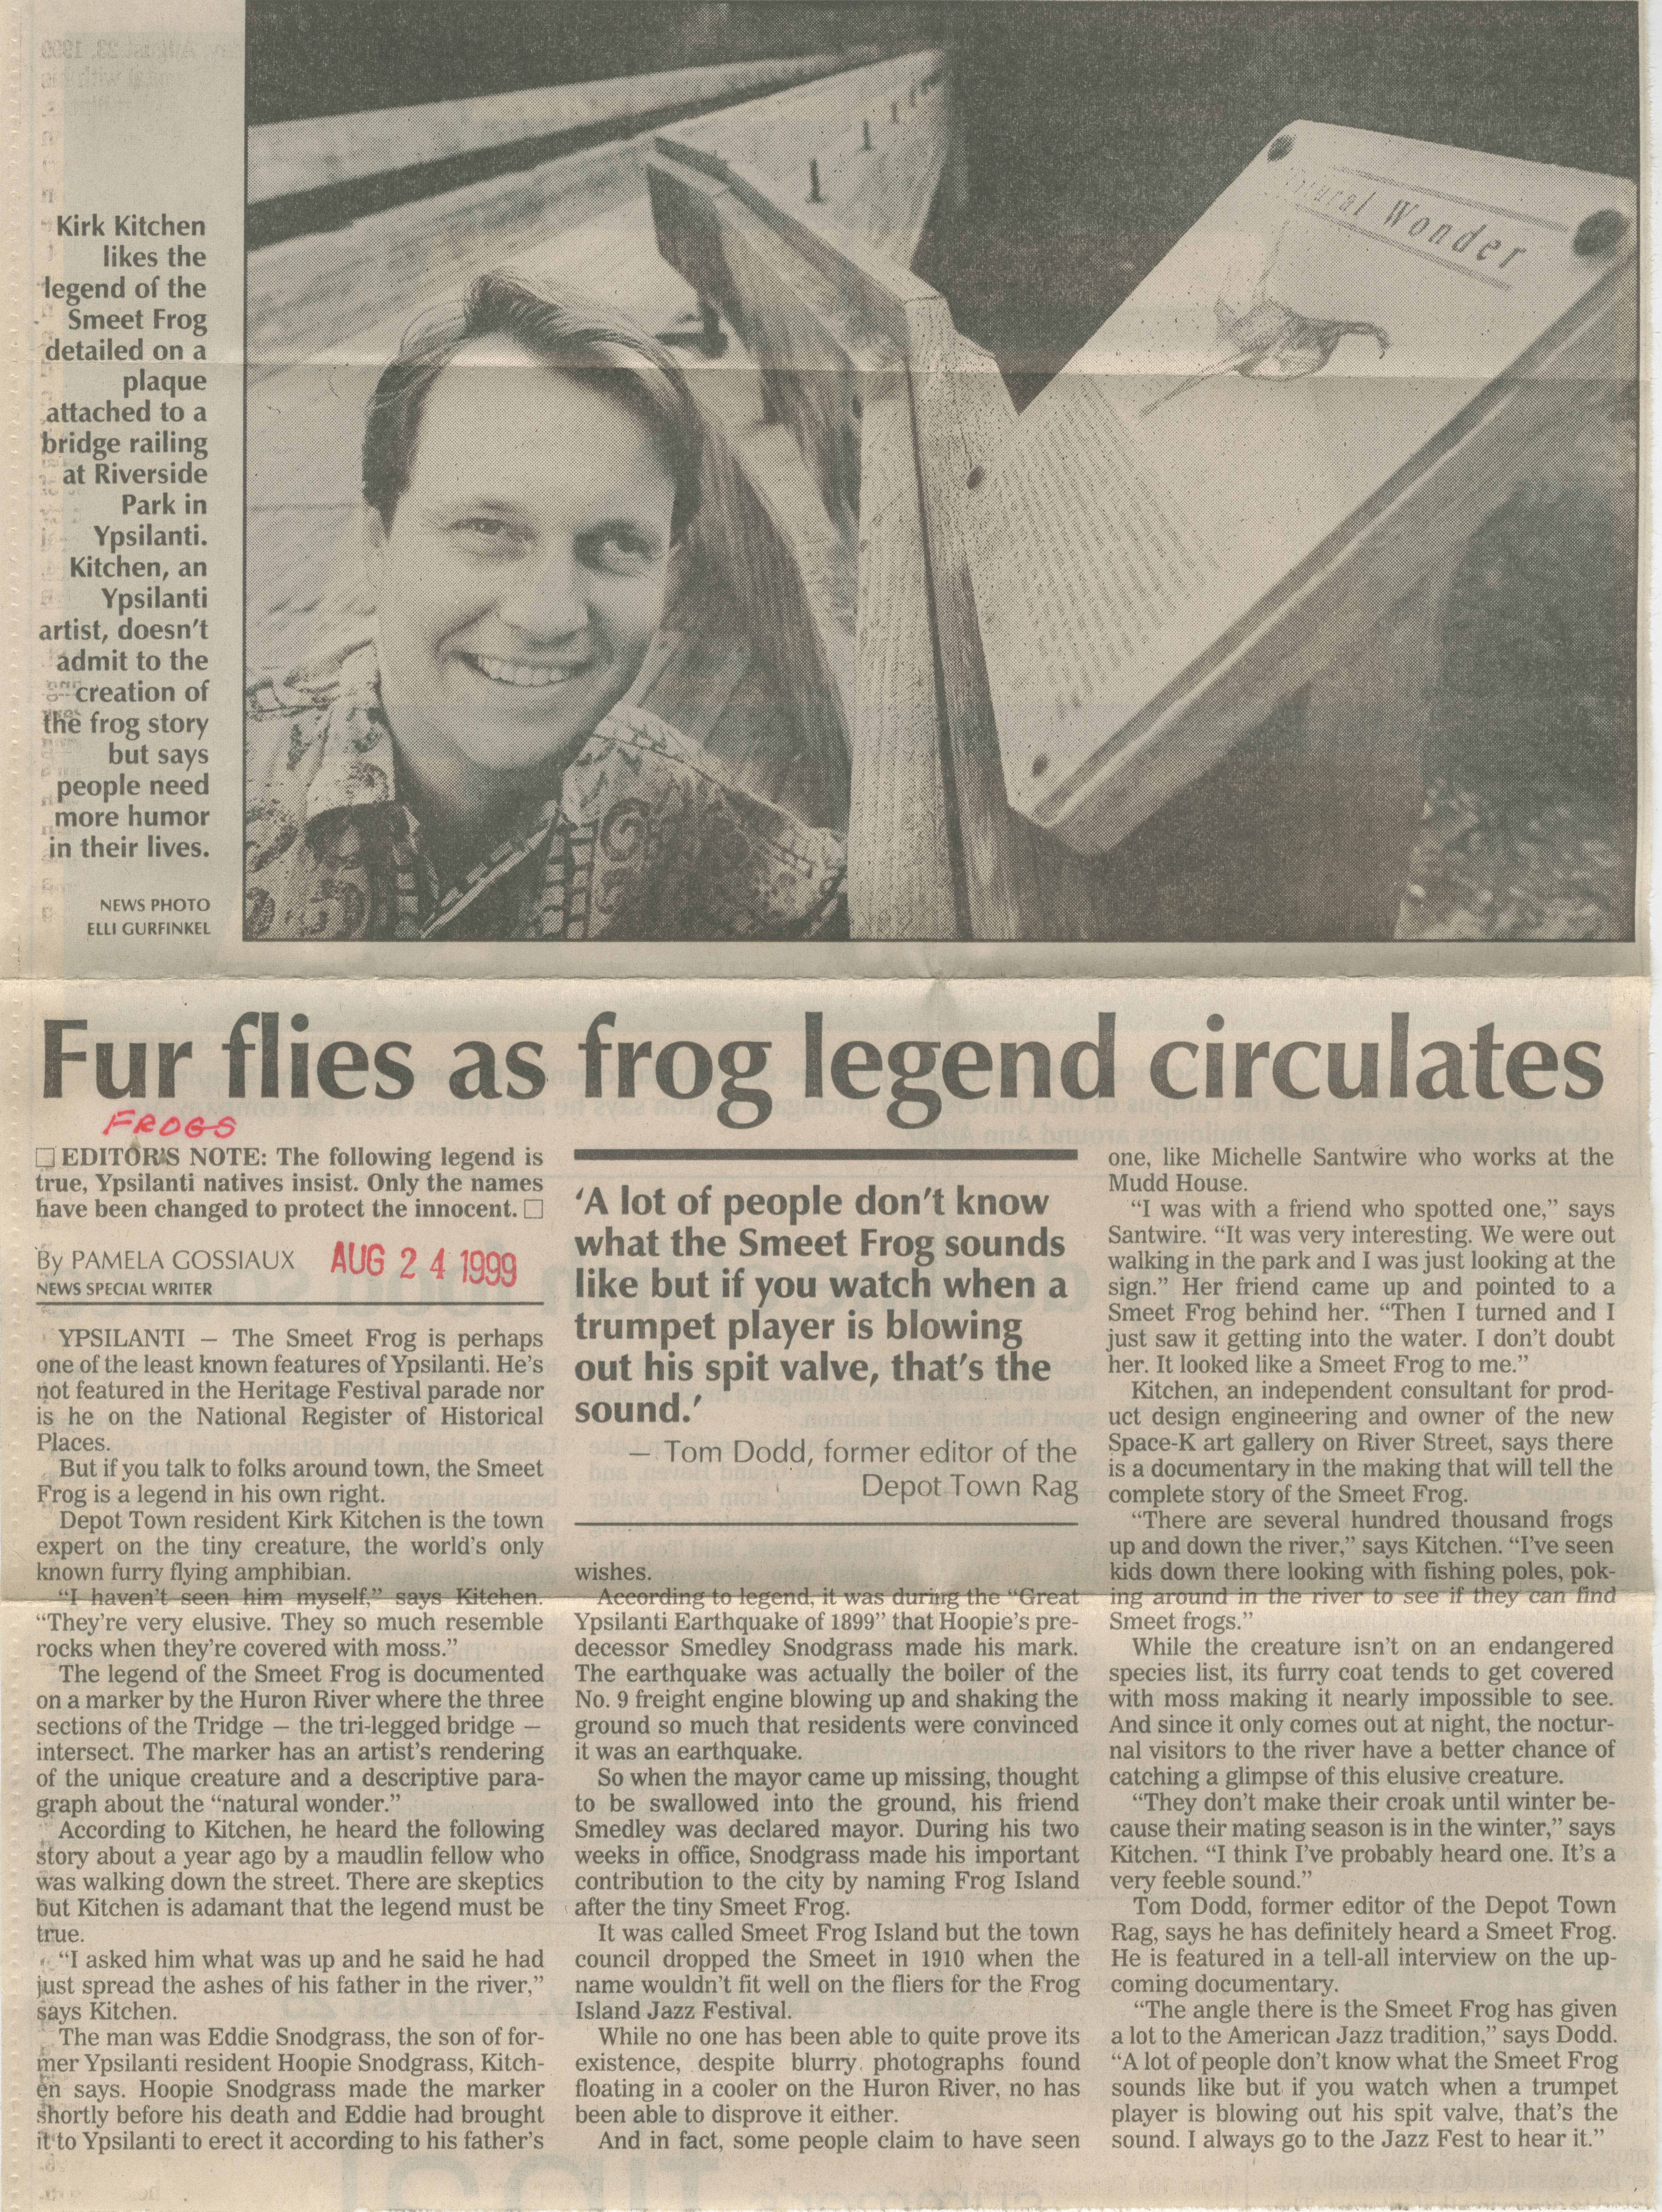 Fur Flies As Frog Legend Circulates image